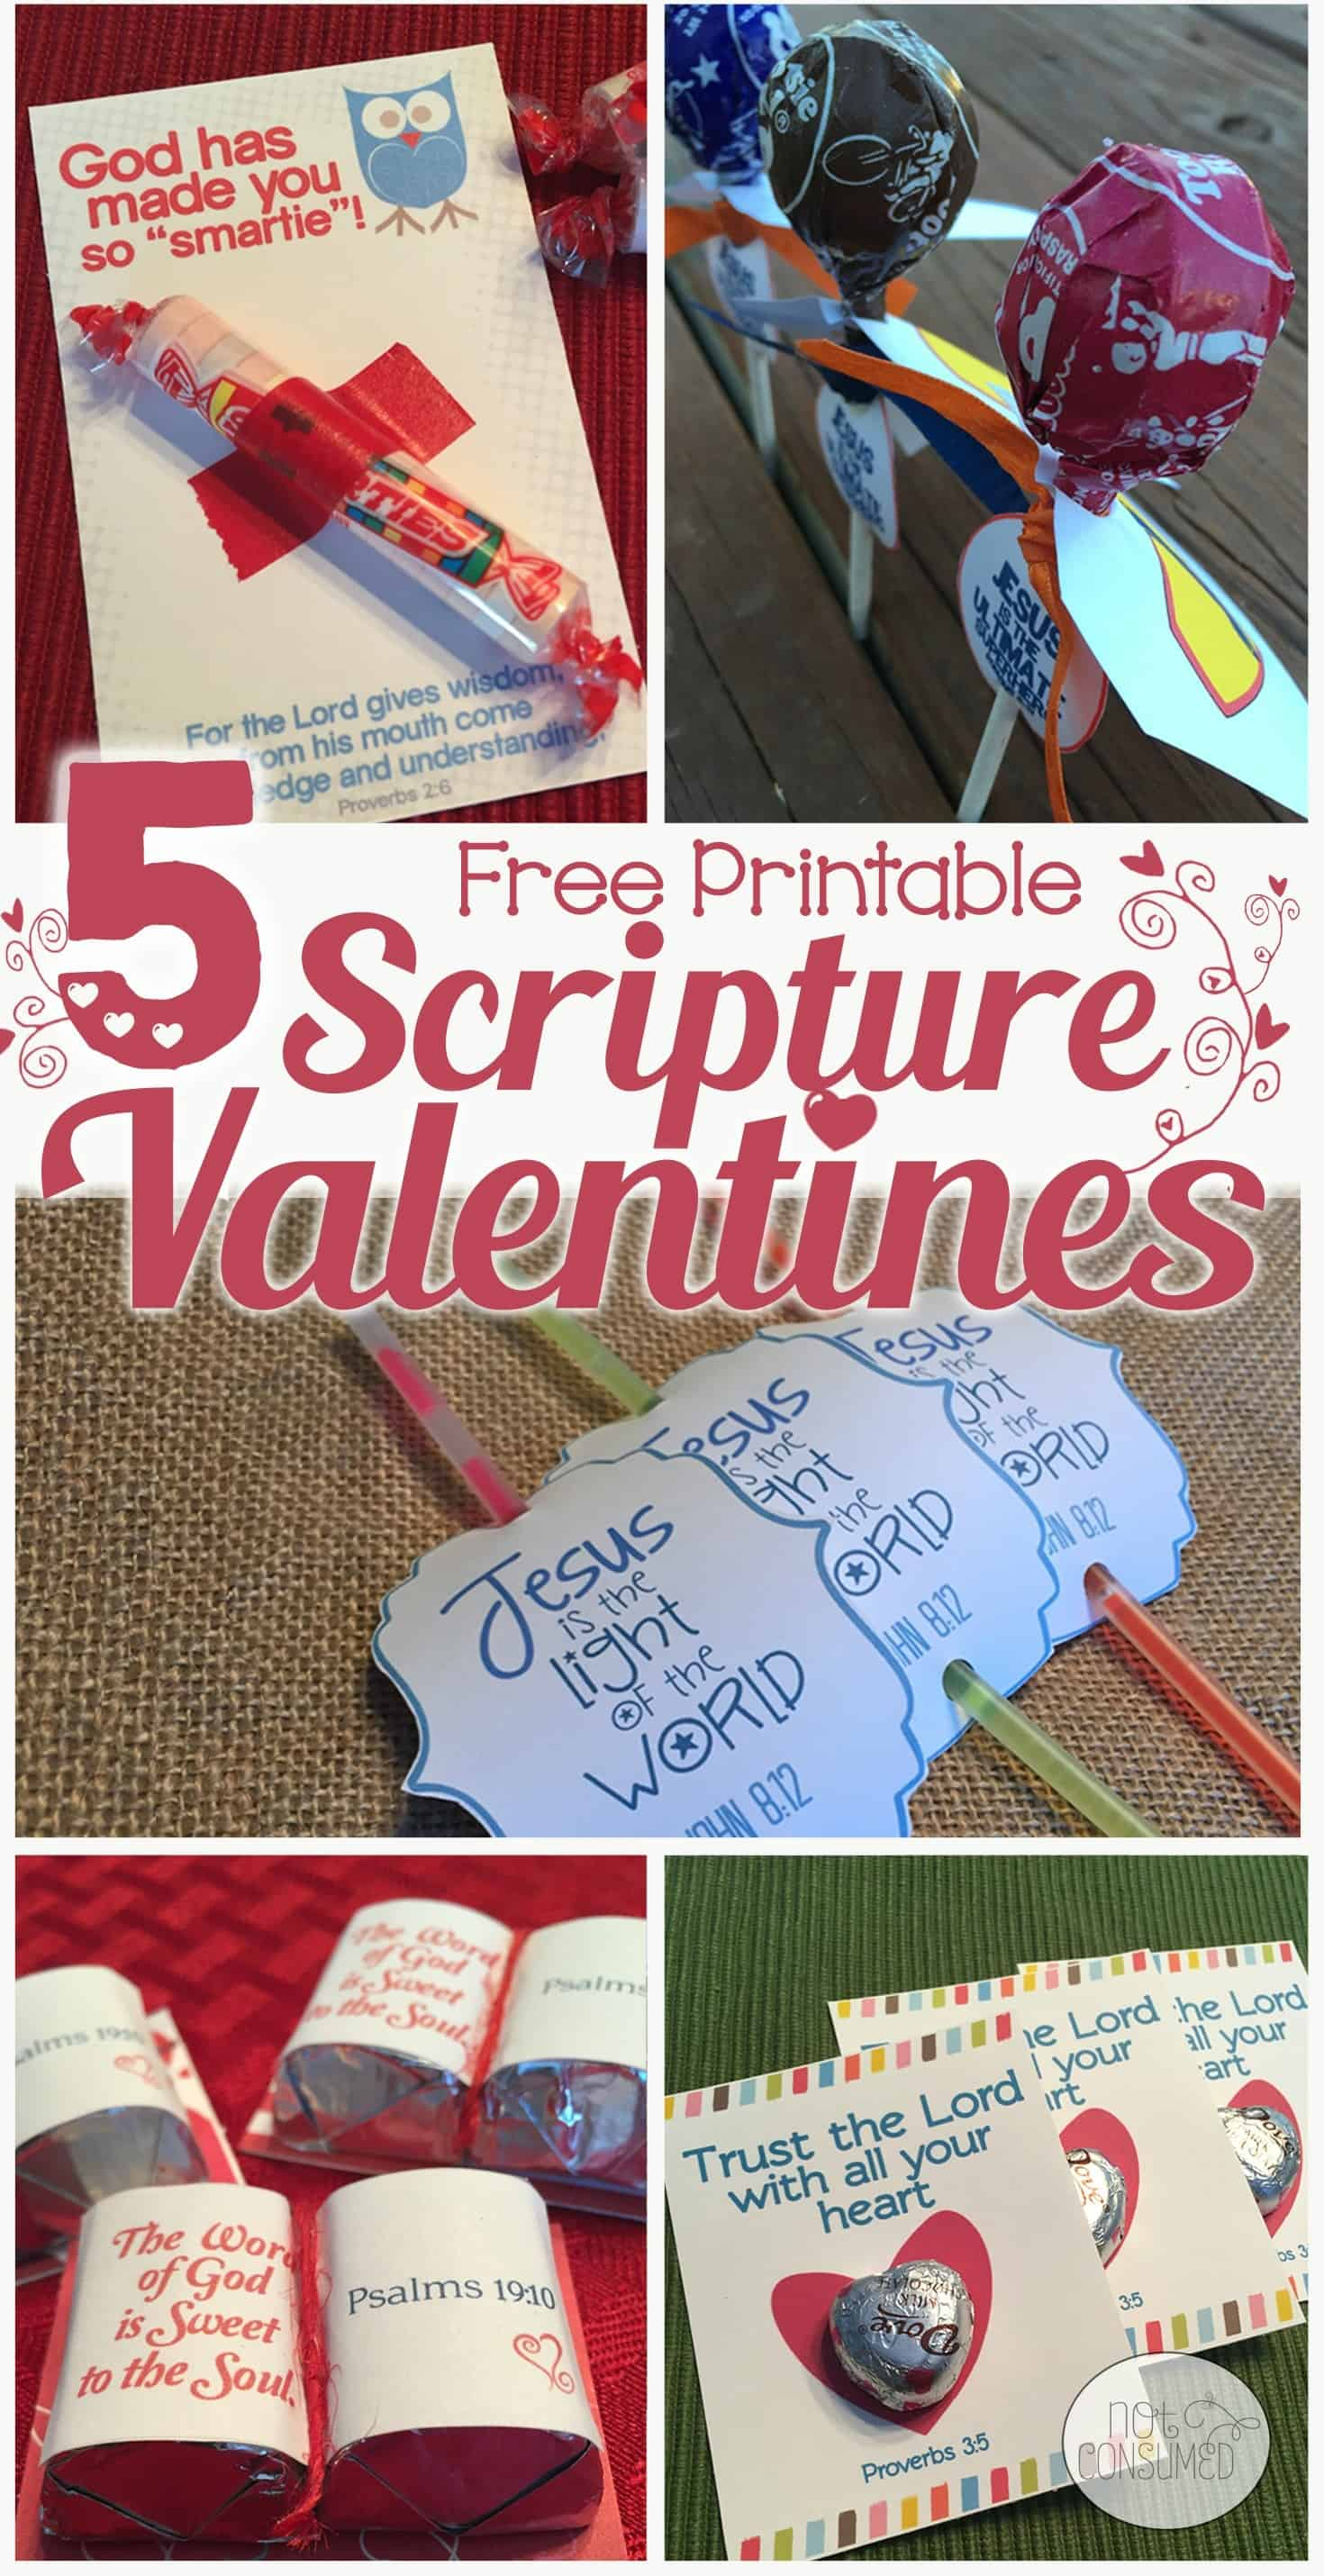 This is an image of Universal Printable Valentines Pictures